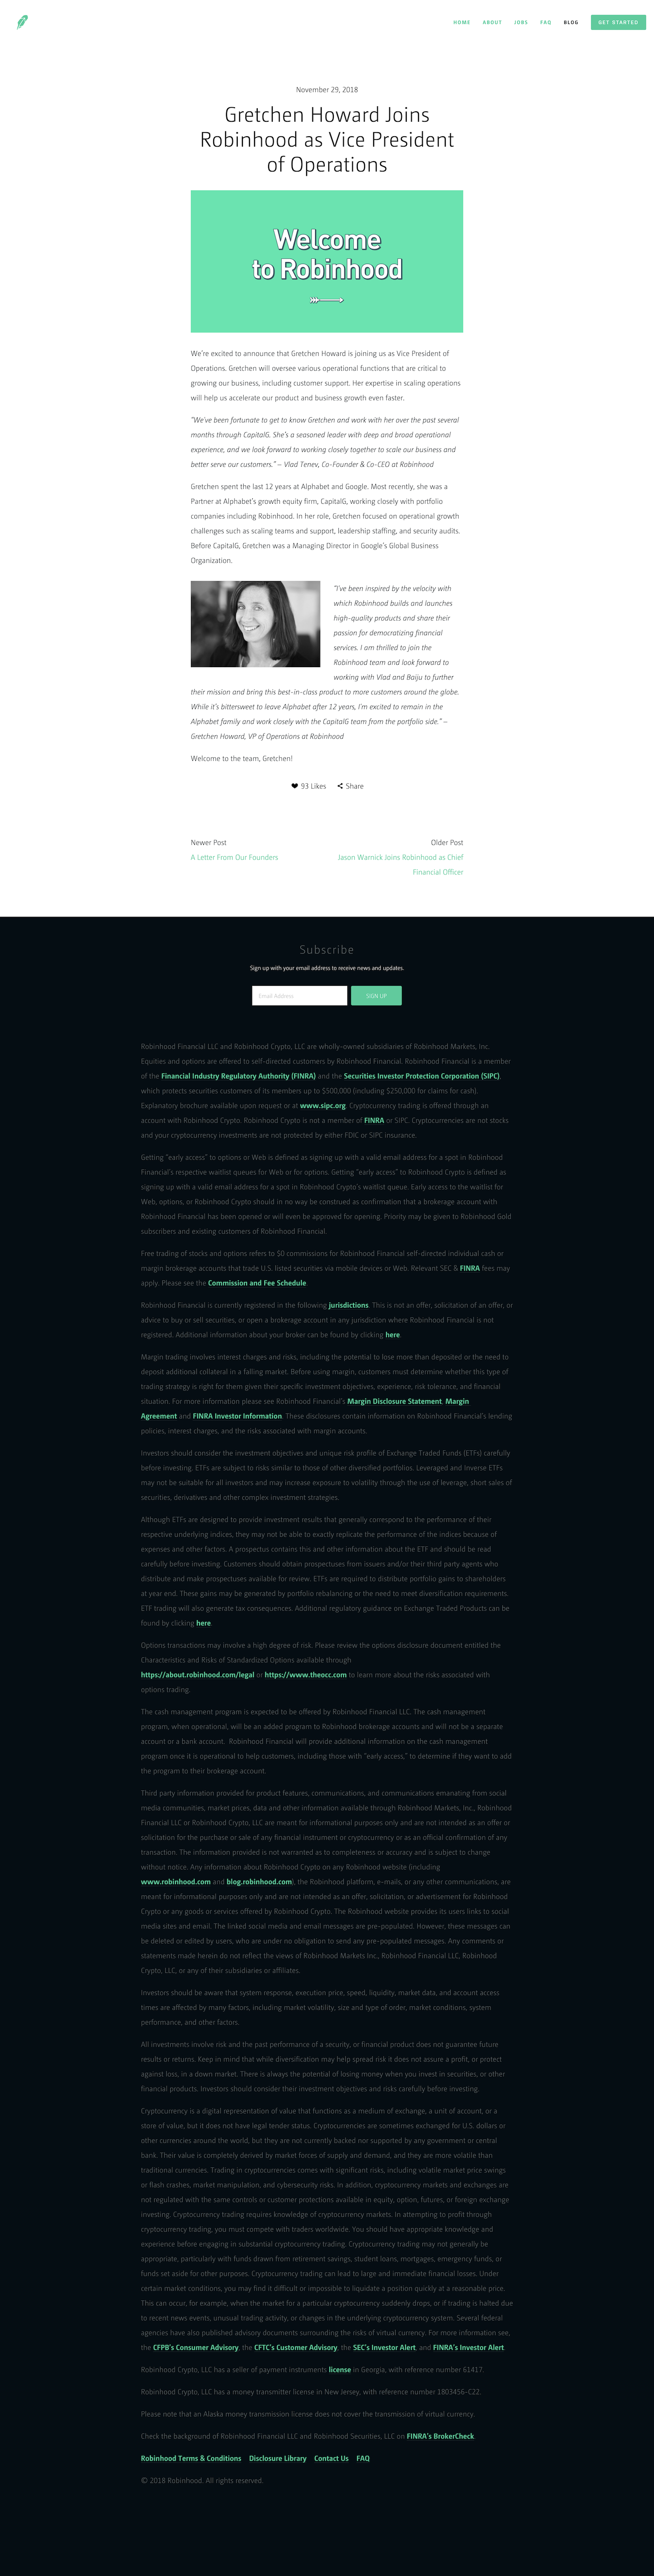 Screenshot of the Blog - Article page from the Robinhood website.